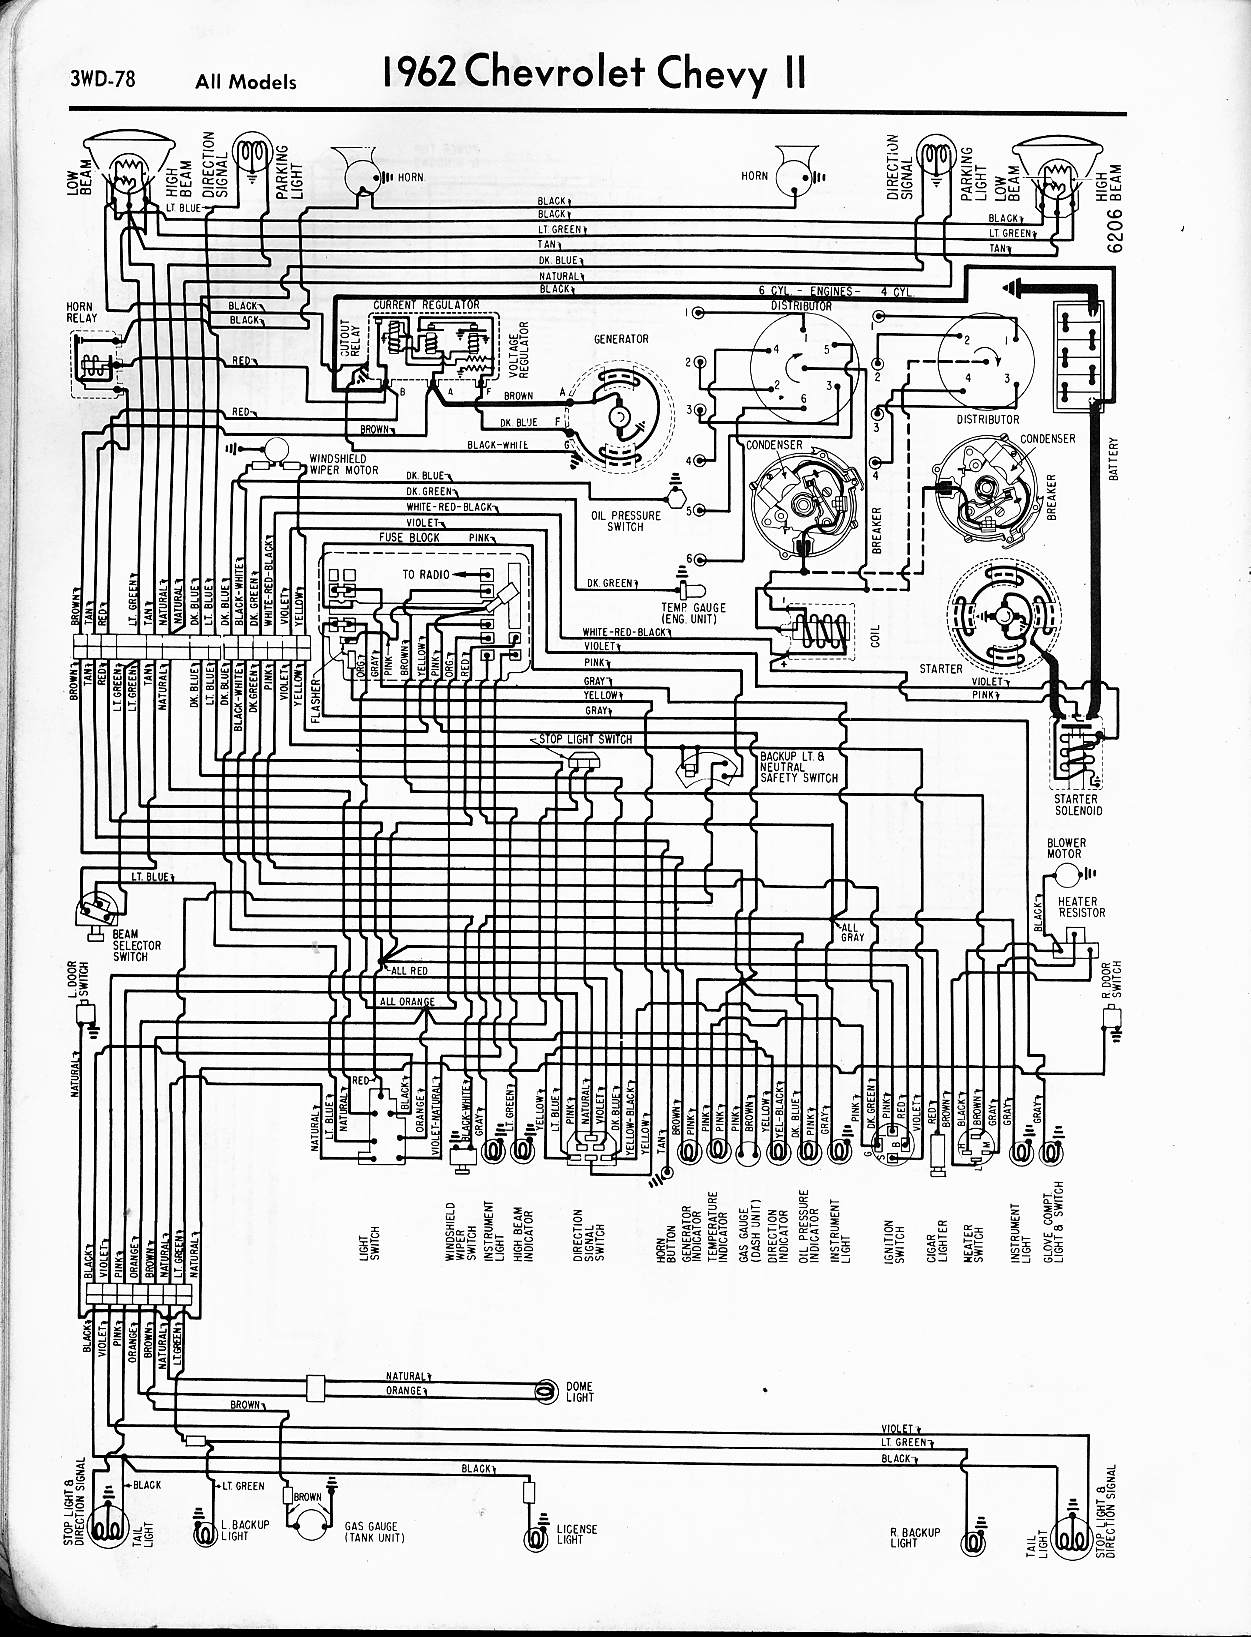 77 Corvette Wiring Diagram Free Download Schematic Starting Know 1940 Ford 57 65 Chevy Diagrams Rh Oldcarmanualproject Com